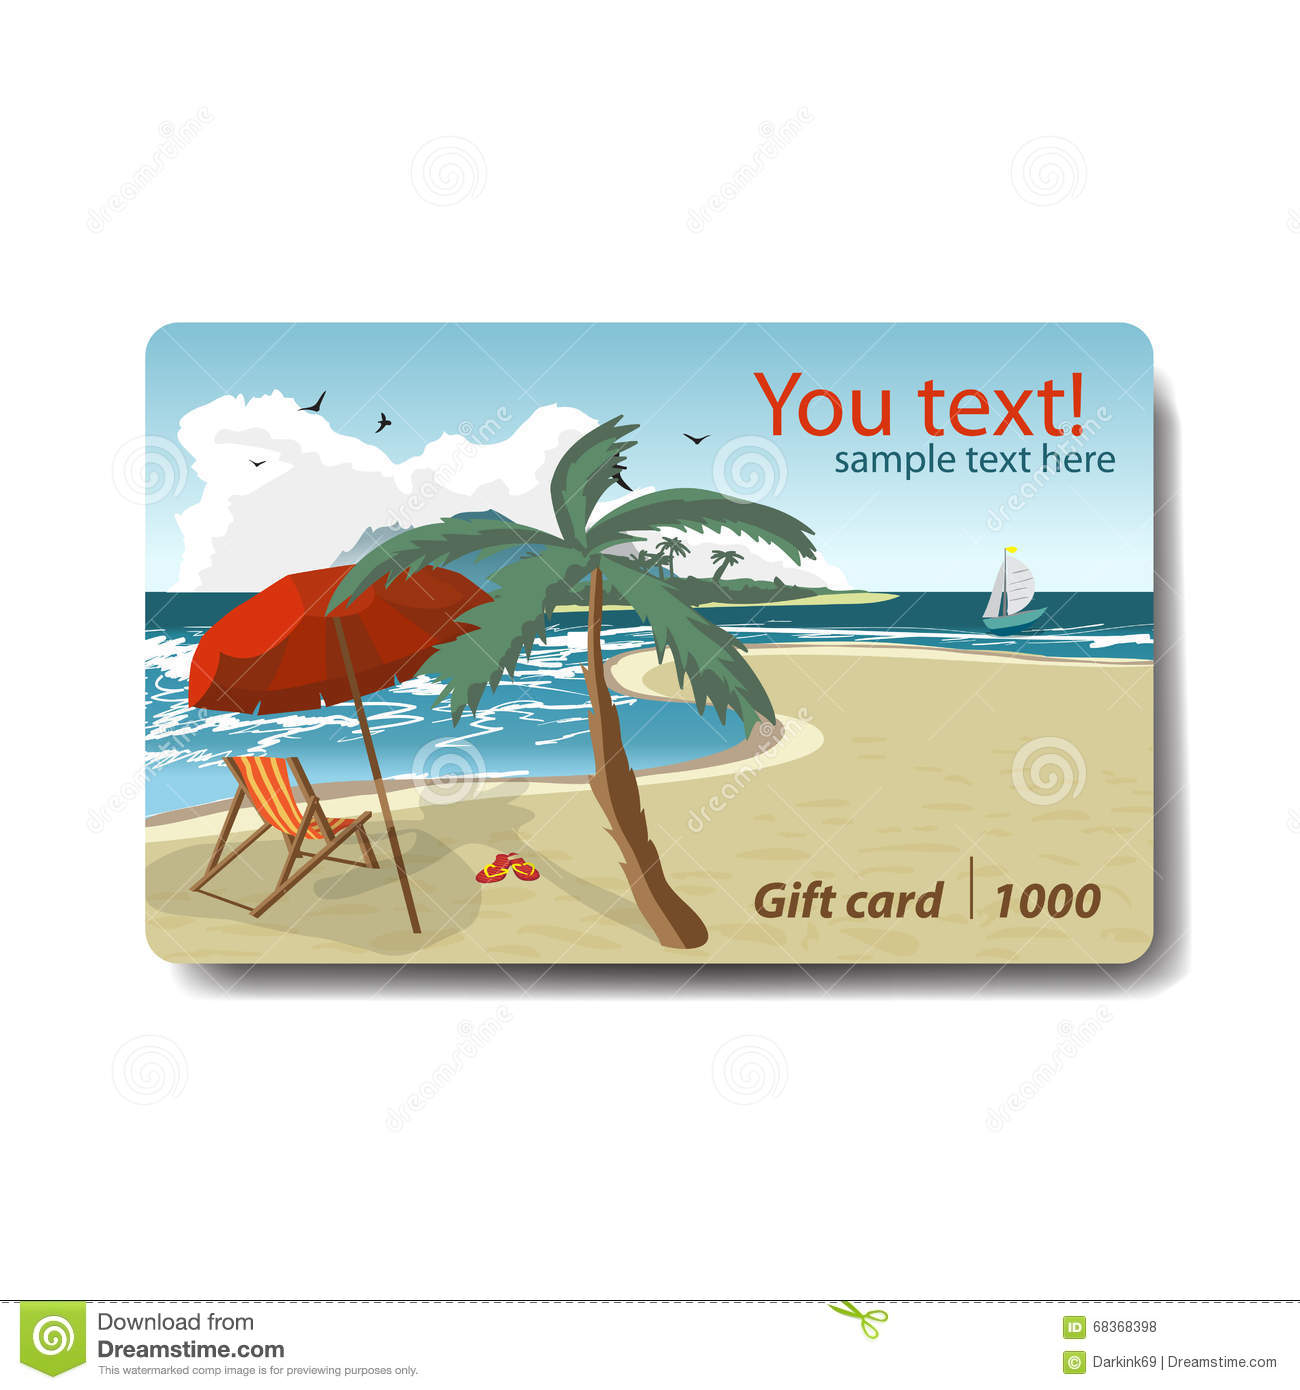 Summer Sale Discount Gift Card Branding Design For Travel Stock